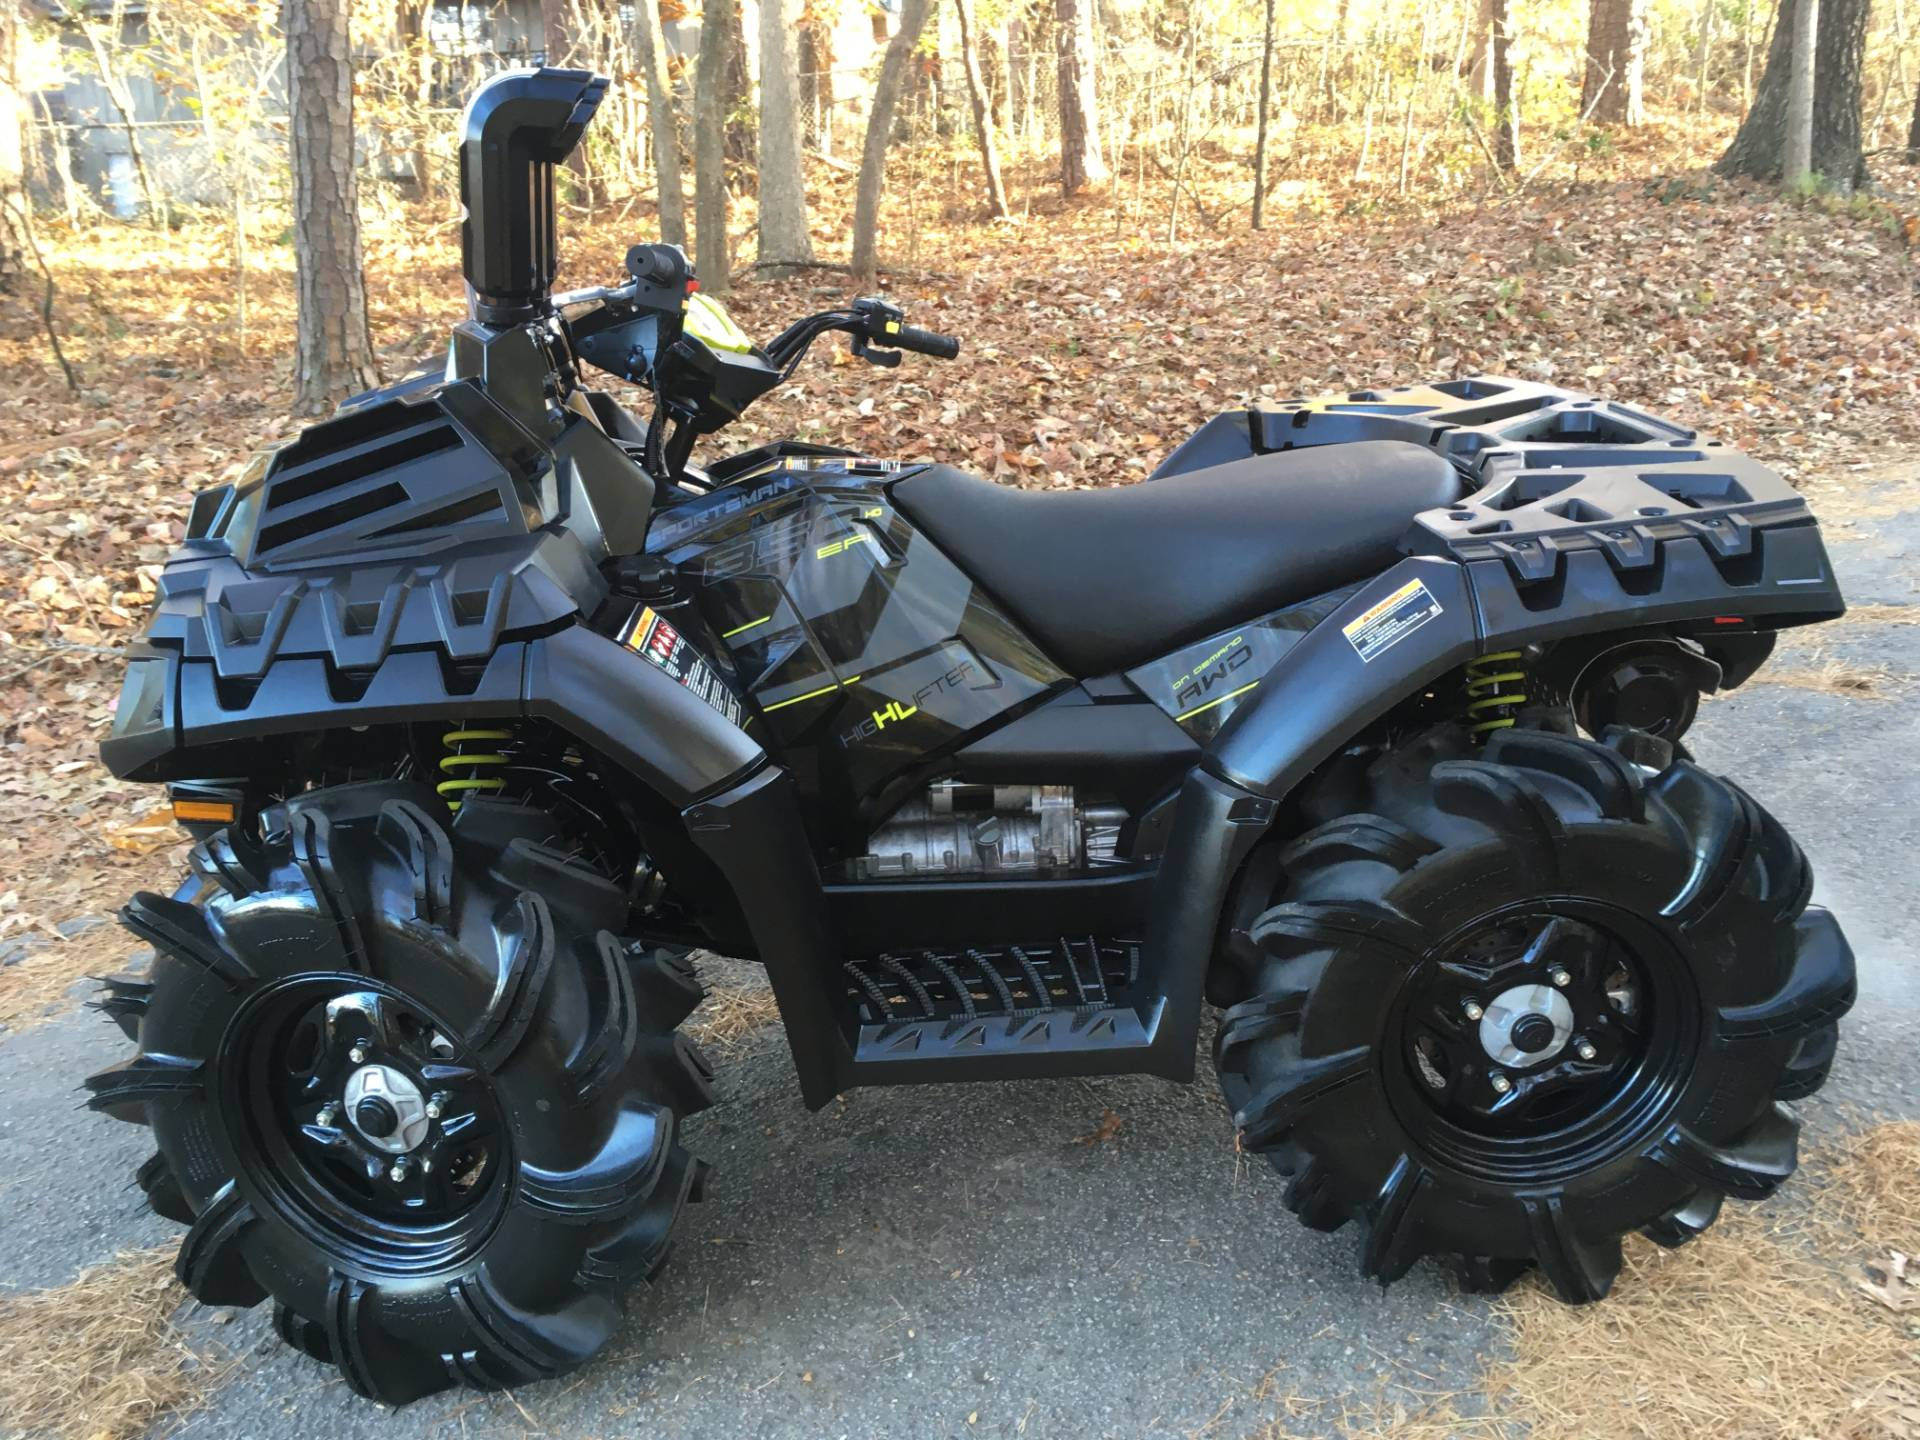 2020 POLARIS SPORTSMAN 850 HIGHLIFTER EDITION in Woodstock, Georgia - Photo 2